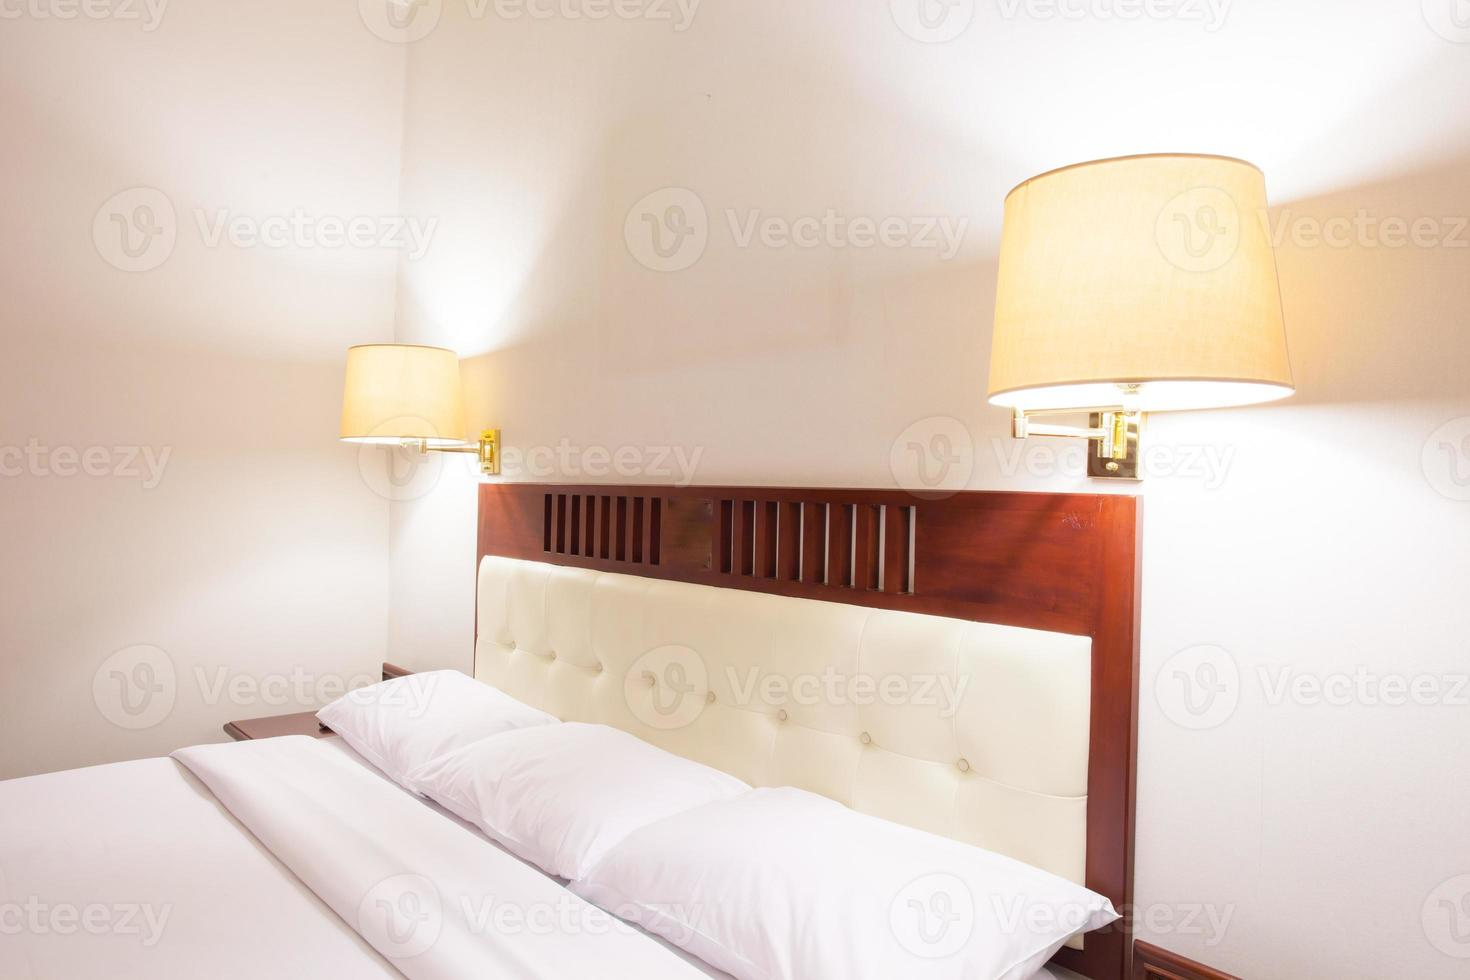 Hotel bed with lights photo